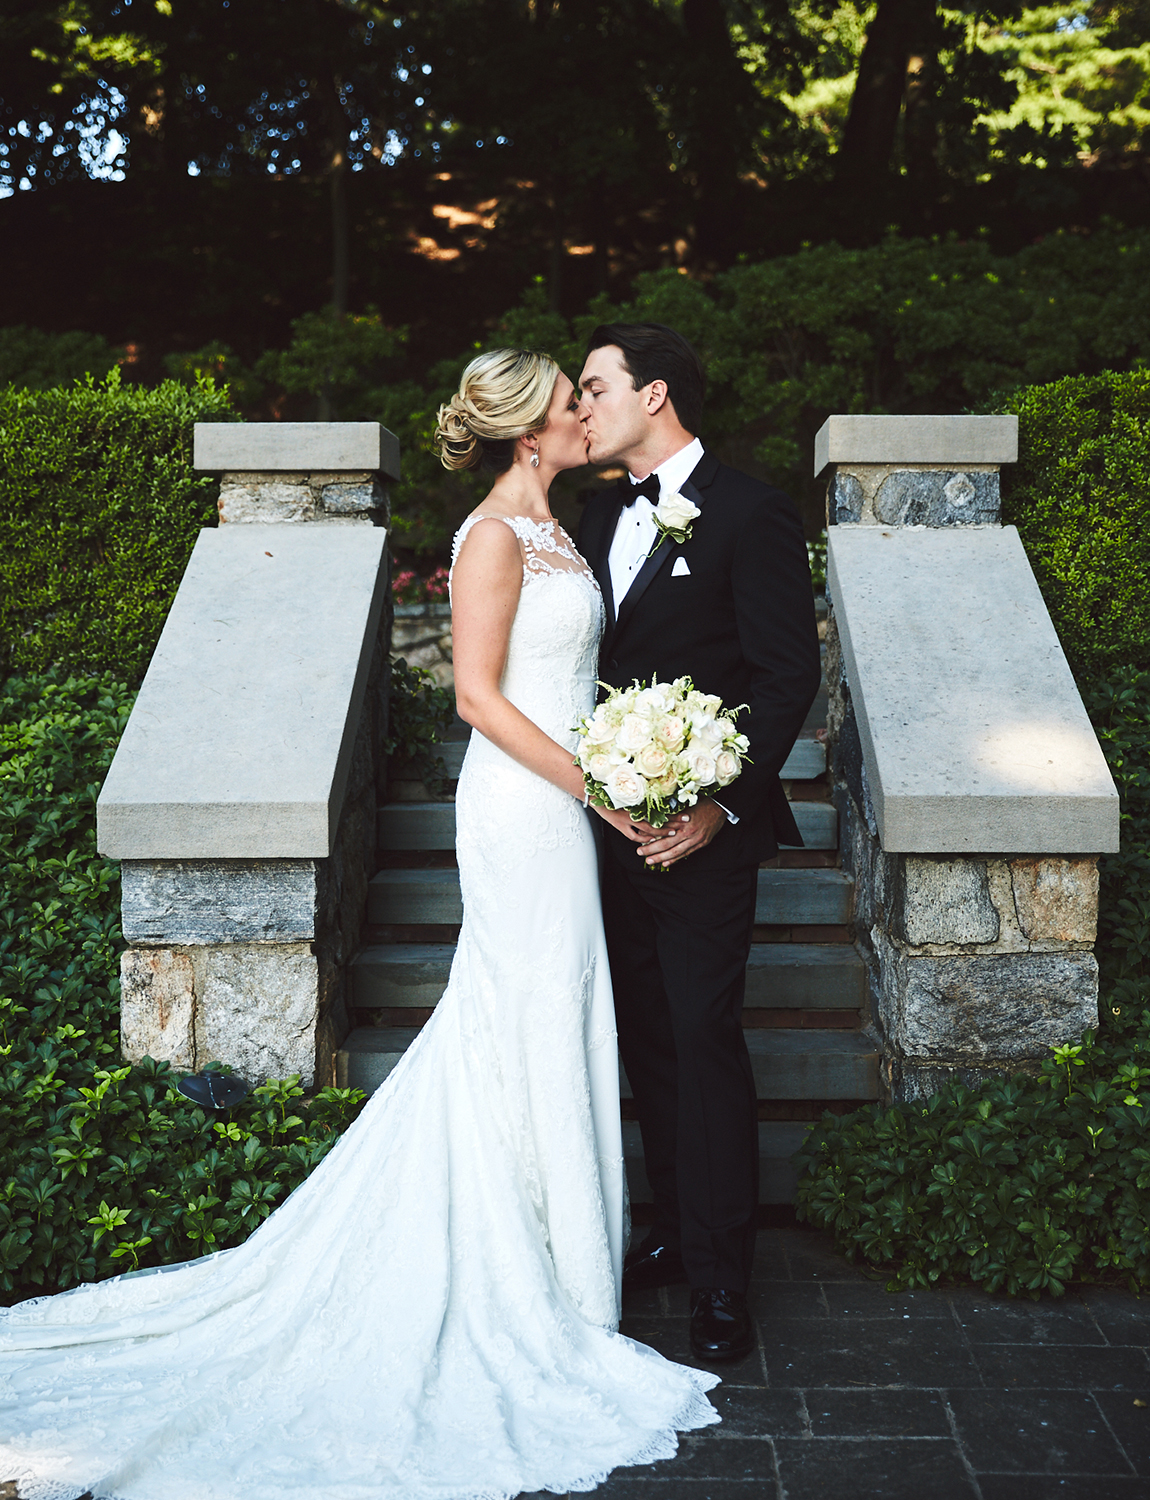 170804_TappanHillMansionWeddingPhotography_NYWeddingPhotographerBy_BriJohnsonWeddings_0080.jpg